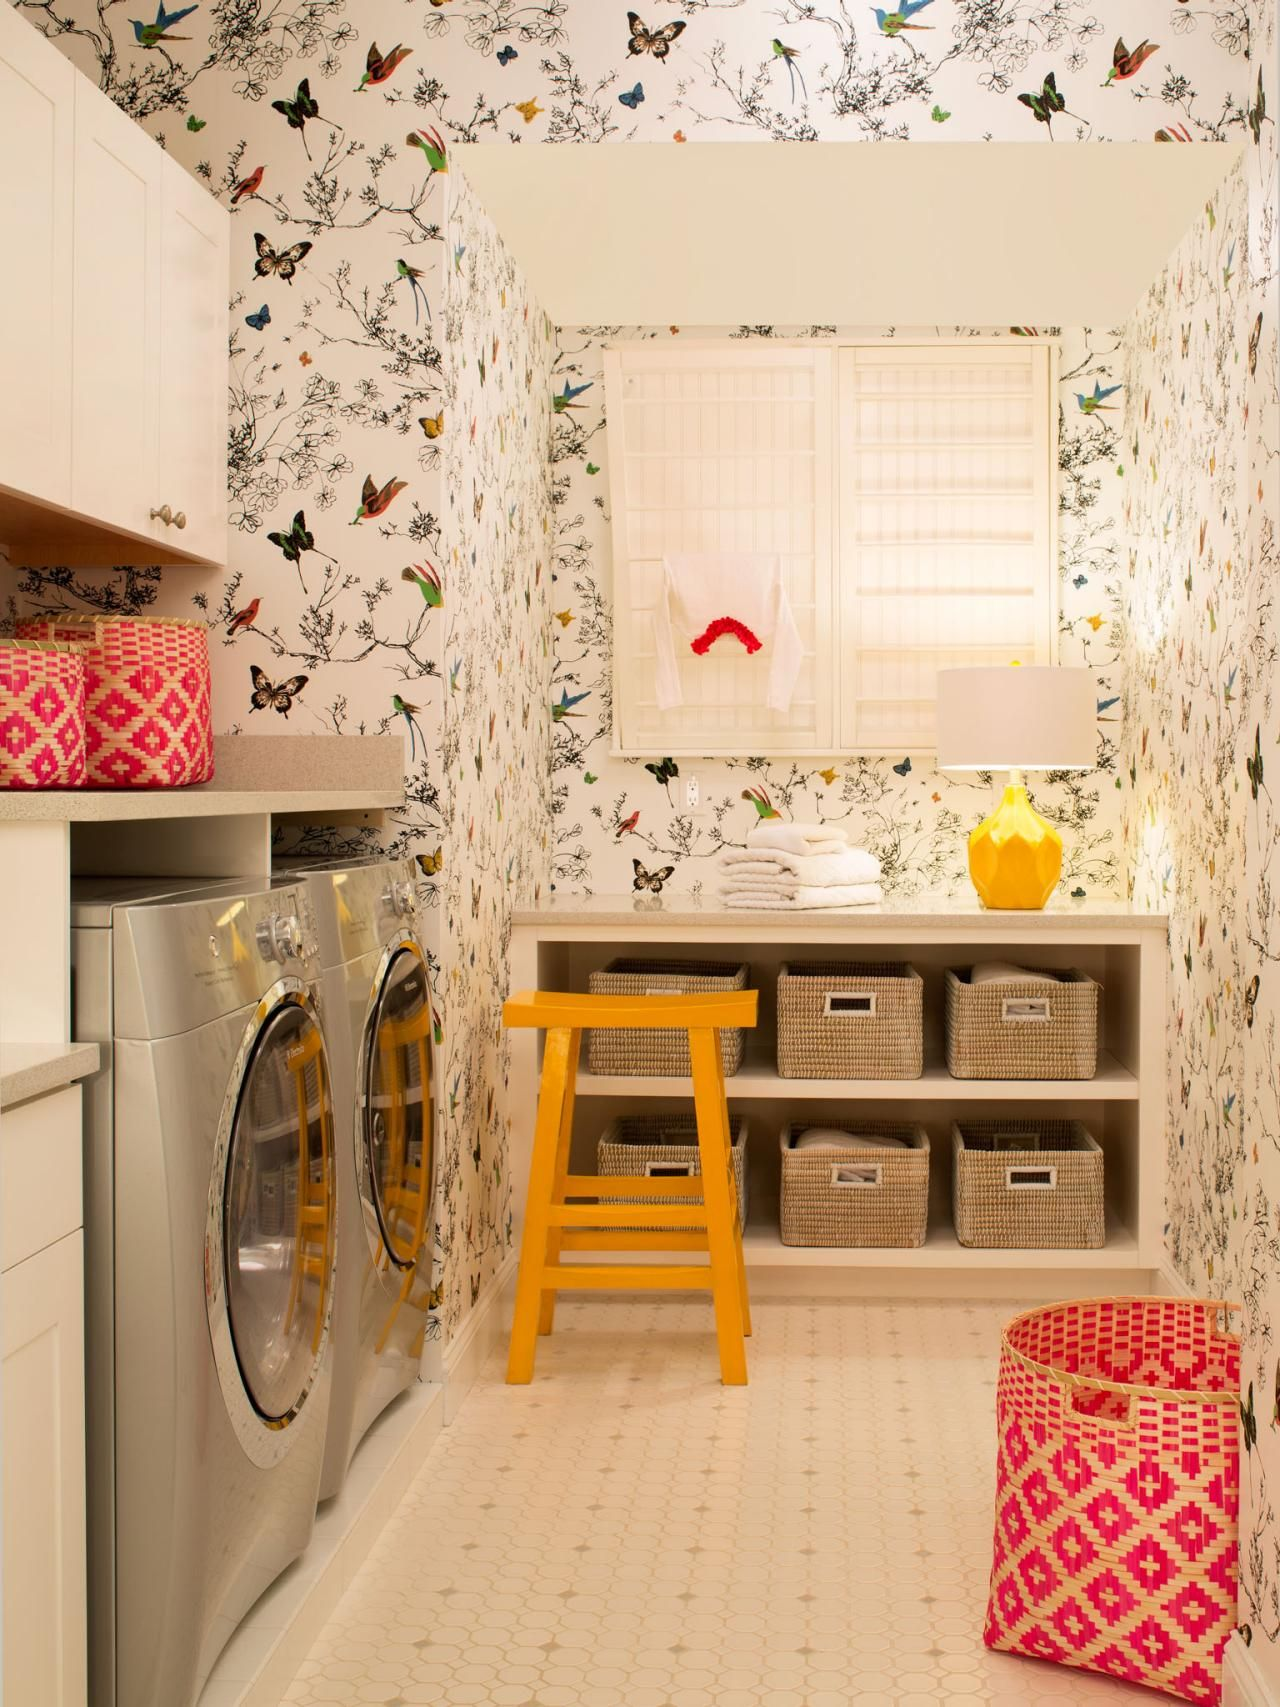 8 Tidy Laundry Rooms That Make Washday Fun